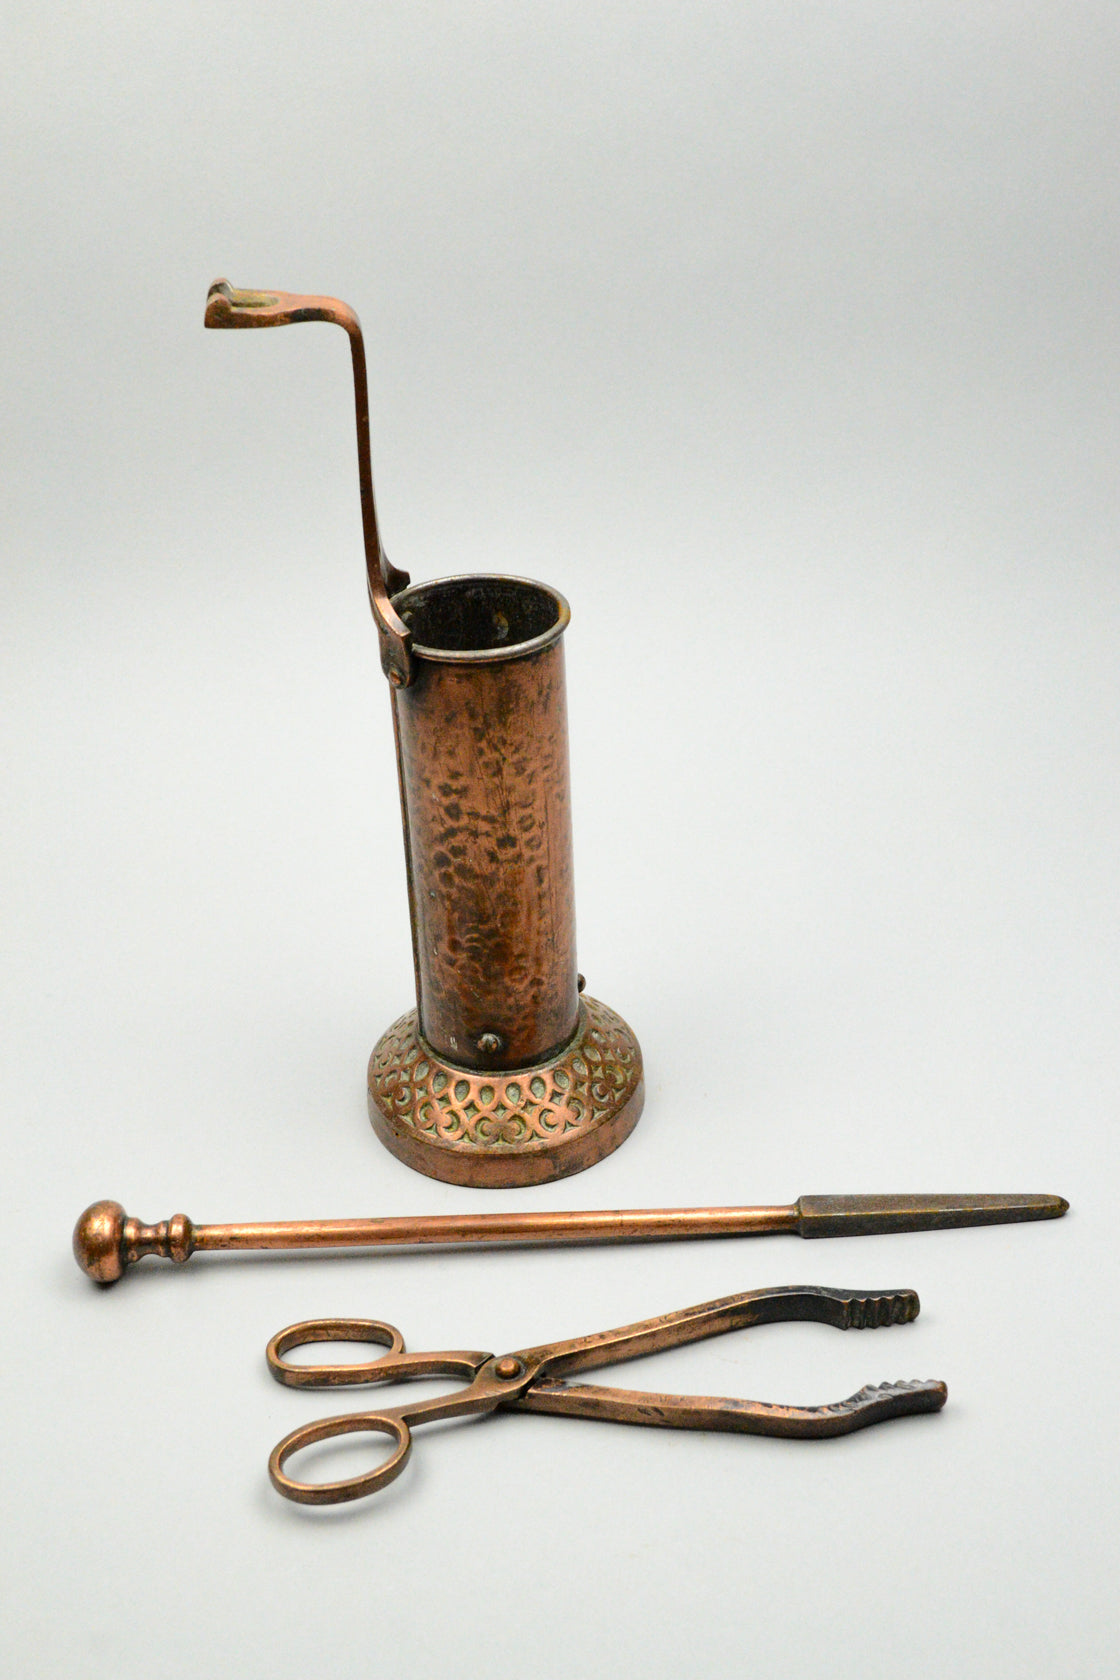 Arts & Crafts Fireplace Tools